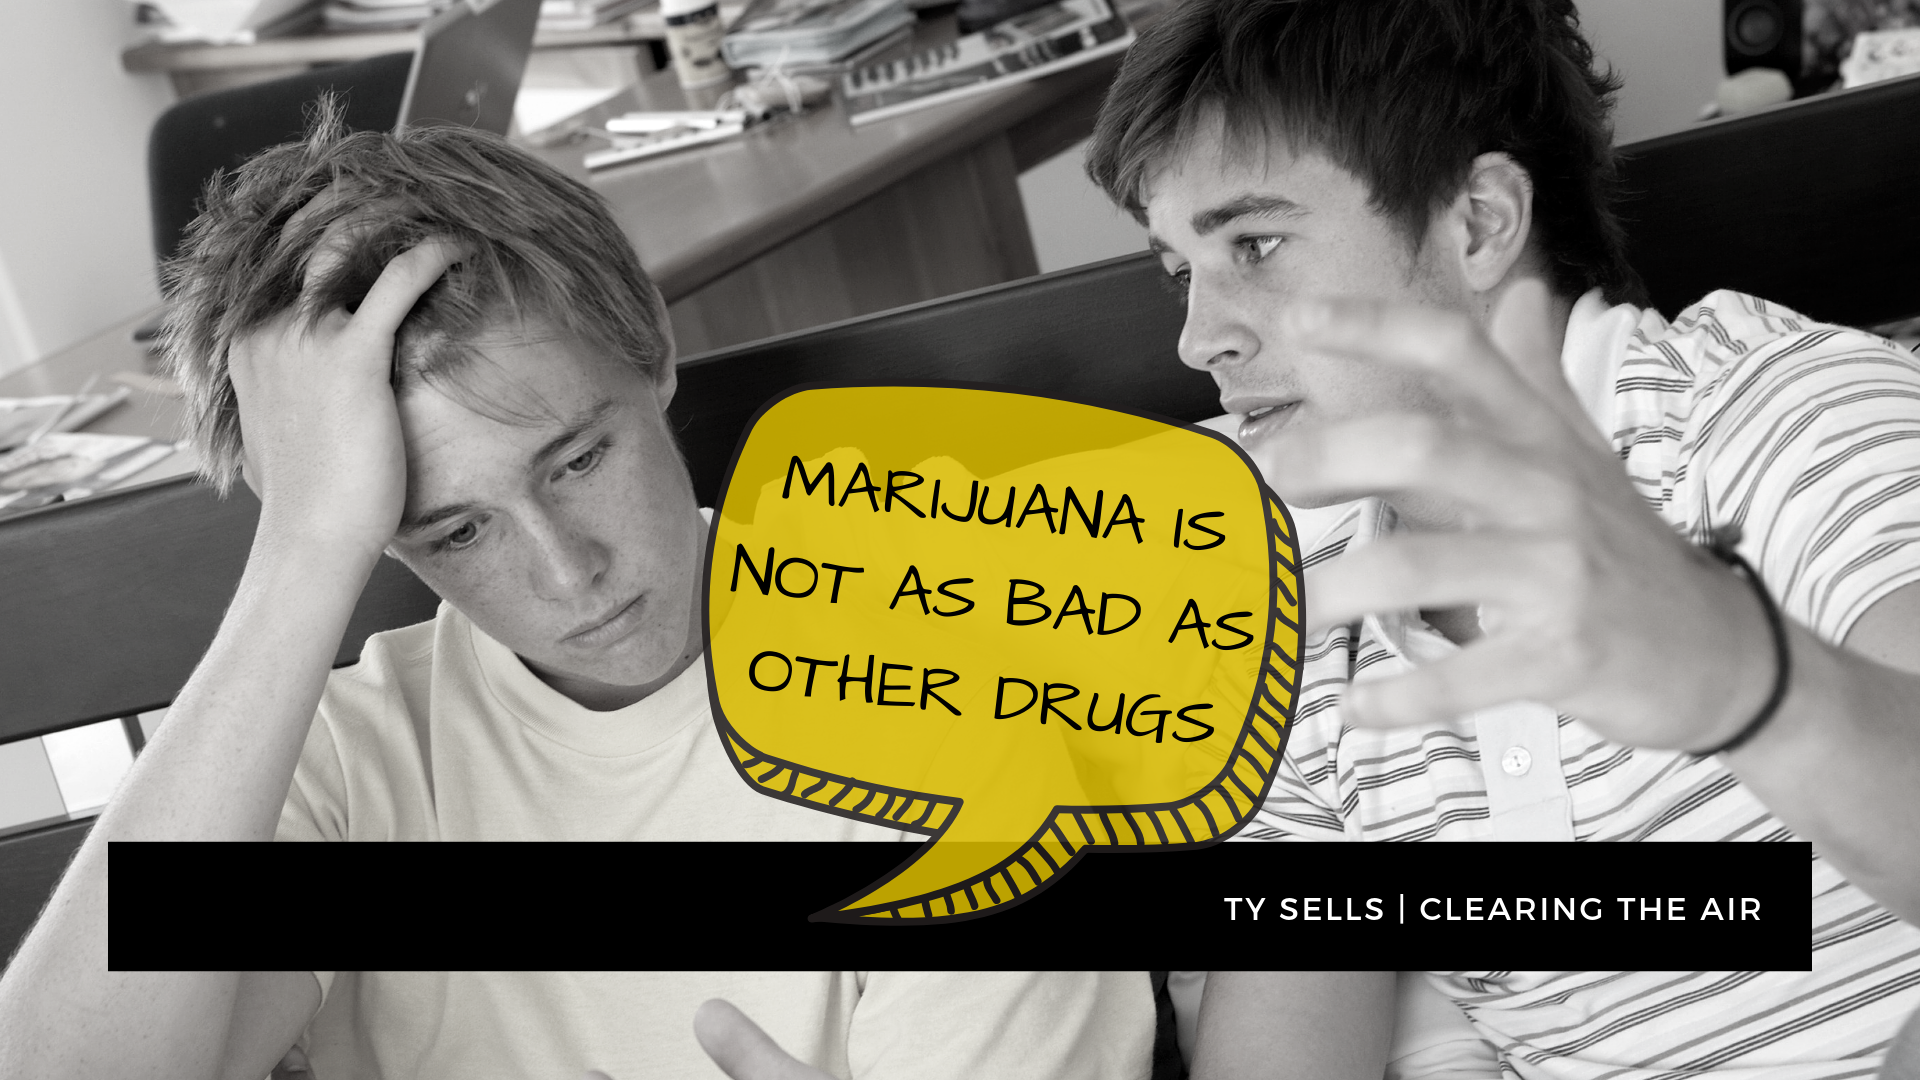 Myth #1 : Marijuana is not as bad as other drugs and alcohol.